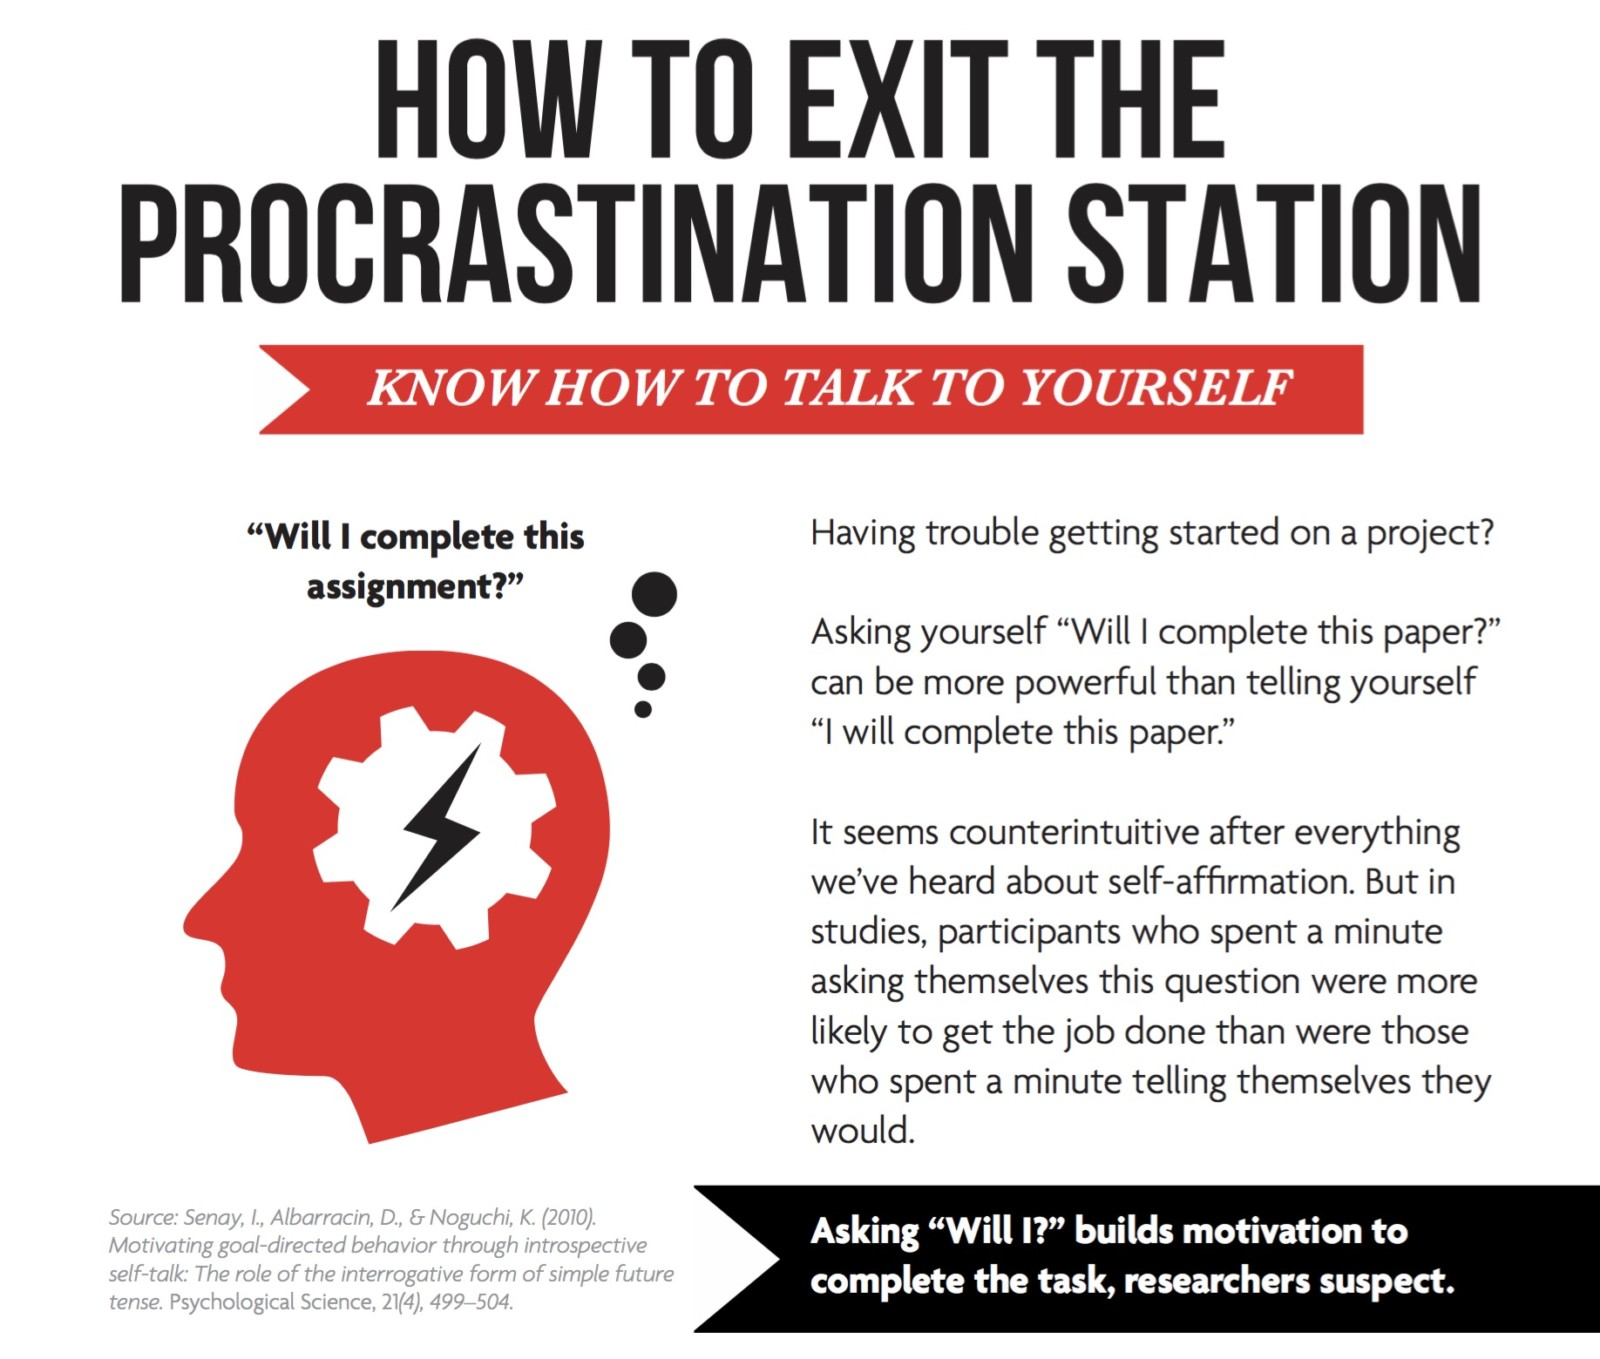 How to exit the procrastination station